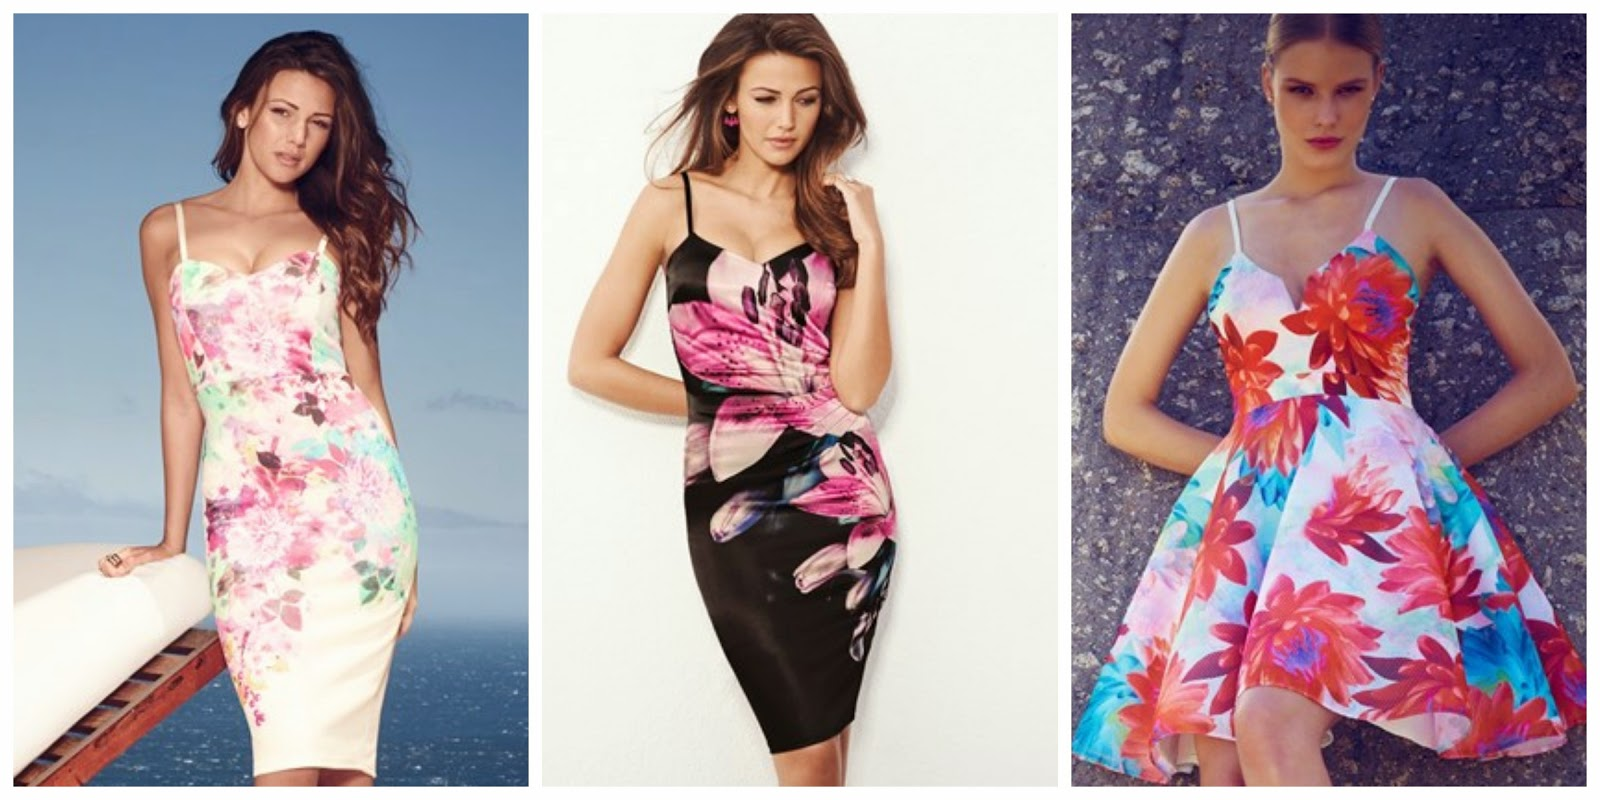 Floral Printed Dresses from Lipsy